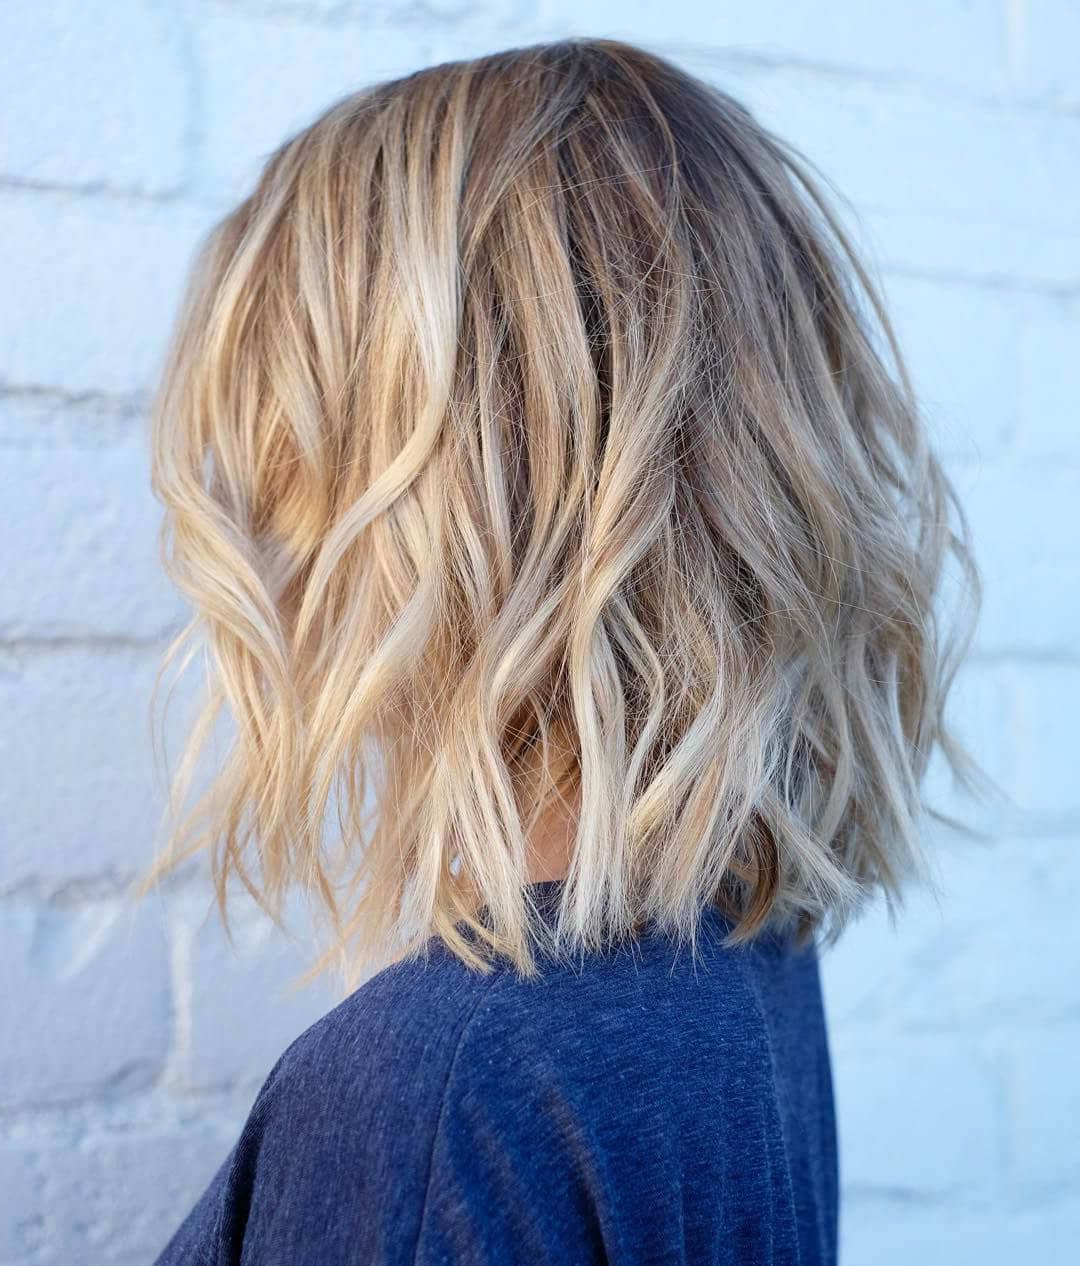 50 Fresh Short Blonde Hair Ideas To Update Your Style In 2018 Intended For Short Crop Hairstyles With Colorful Highlights (View 10 of 20)